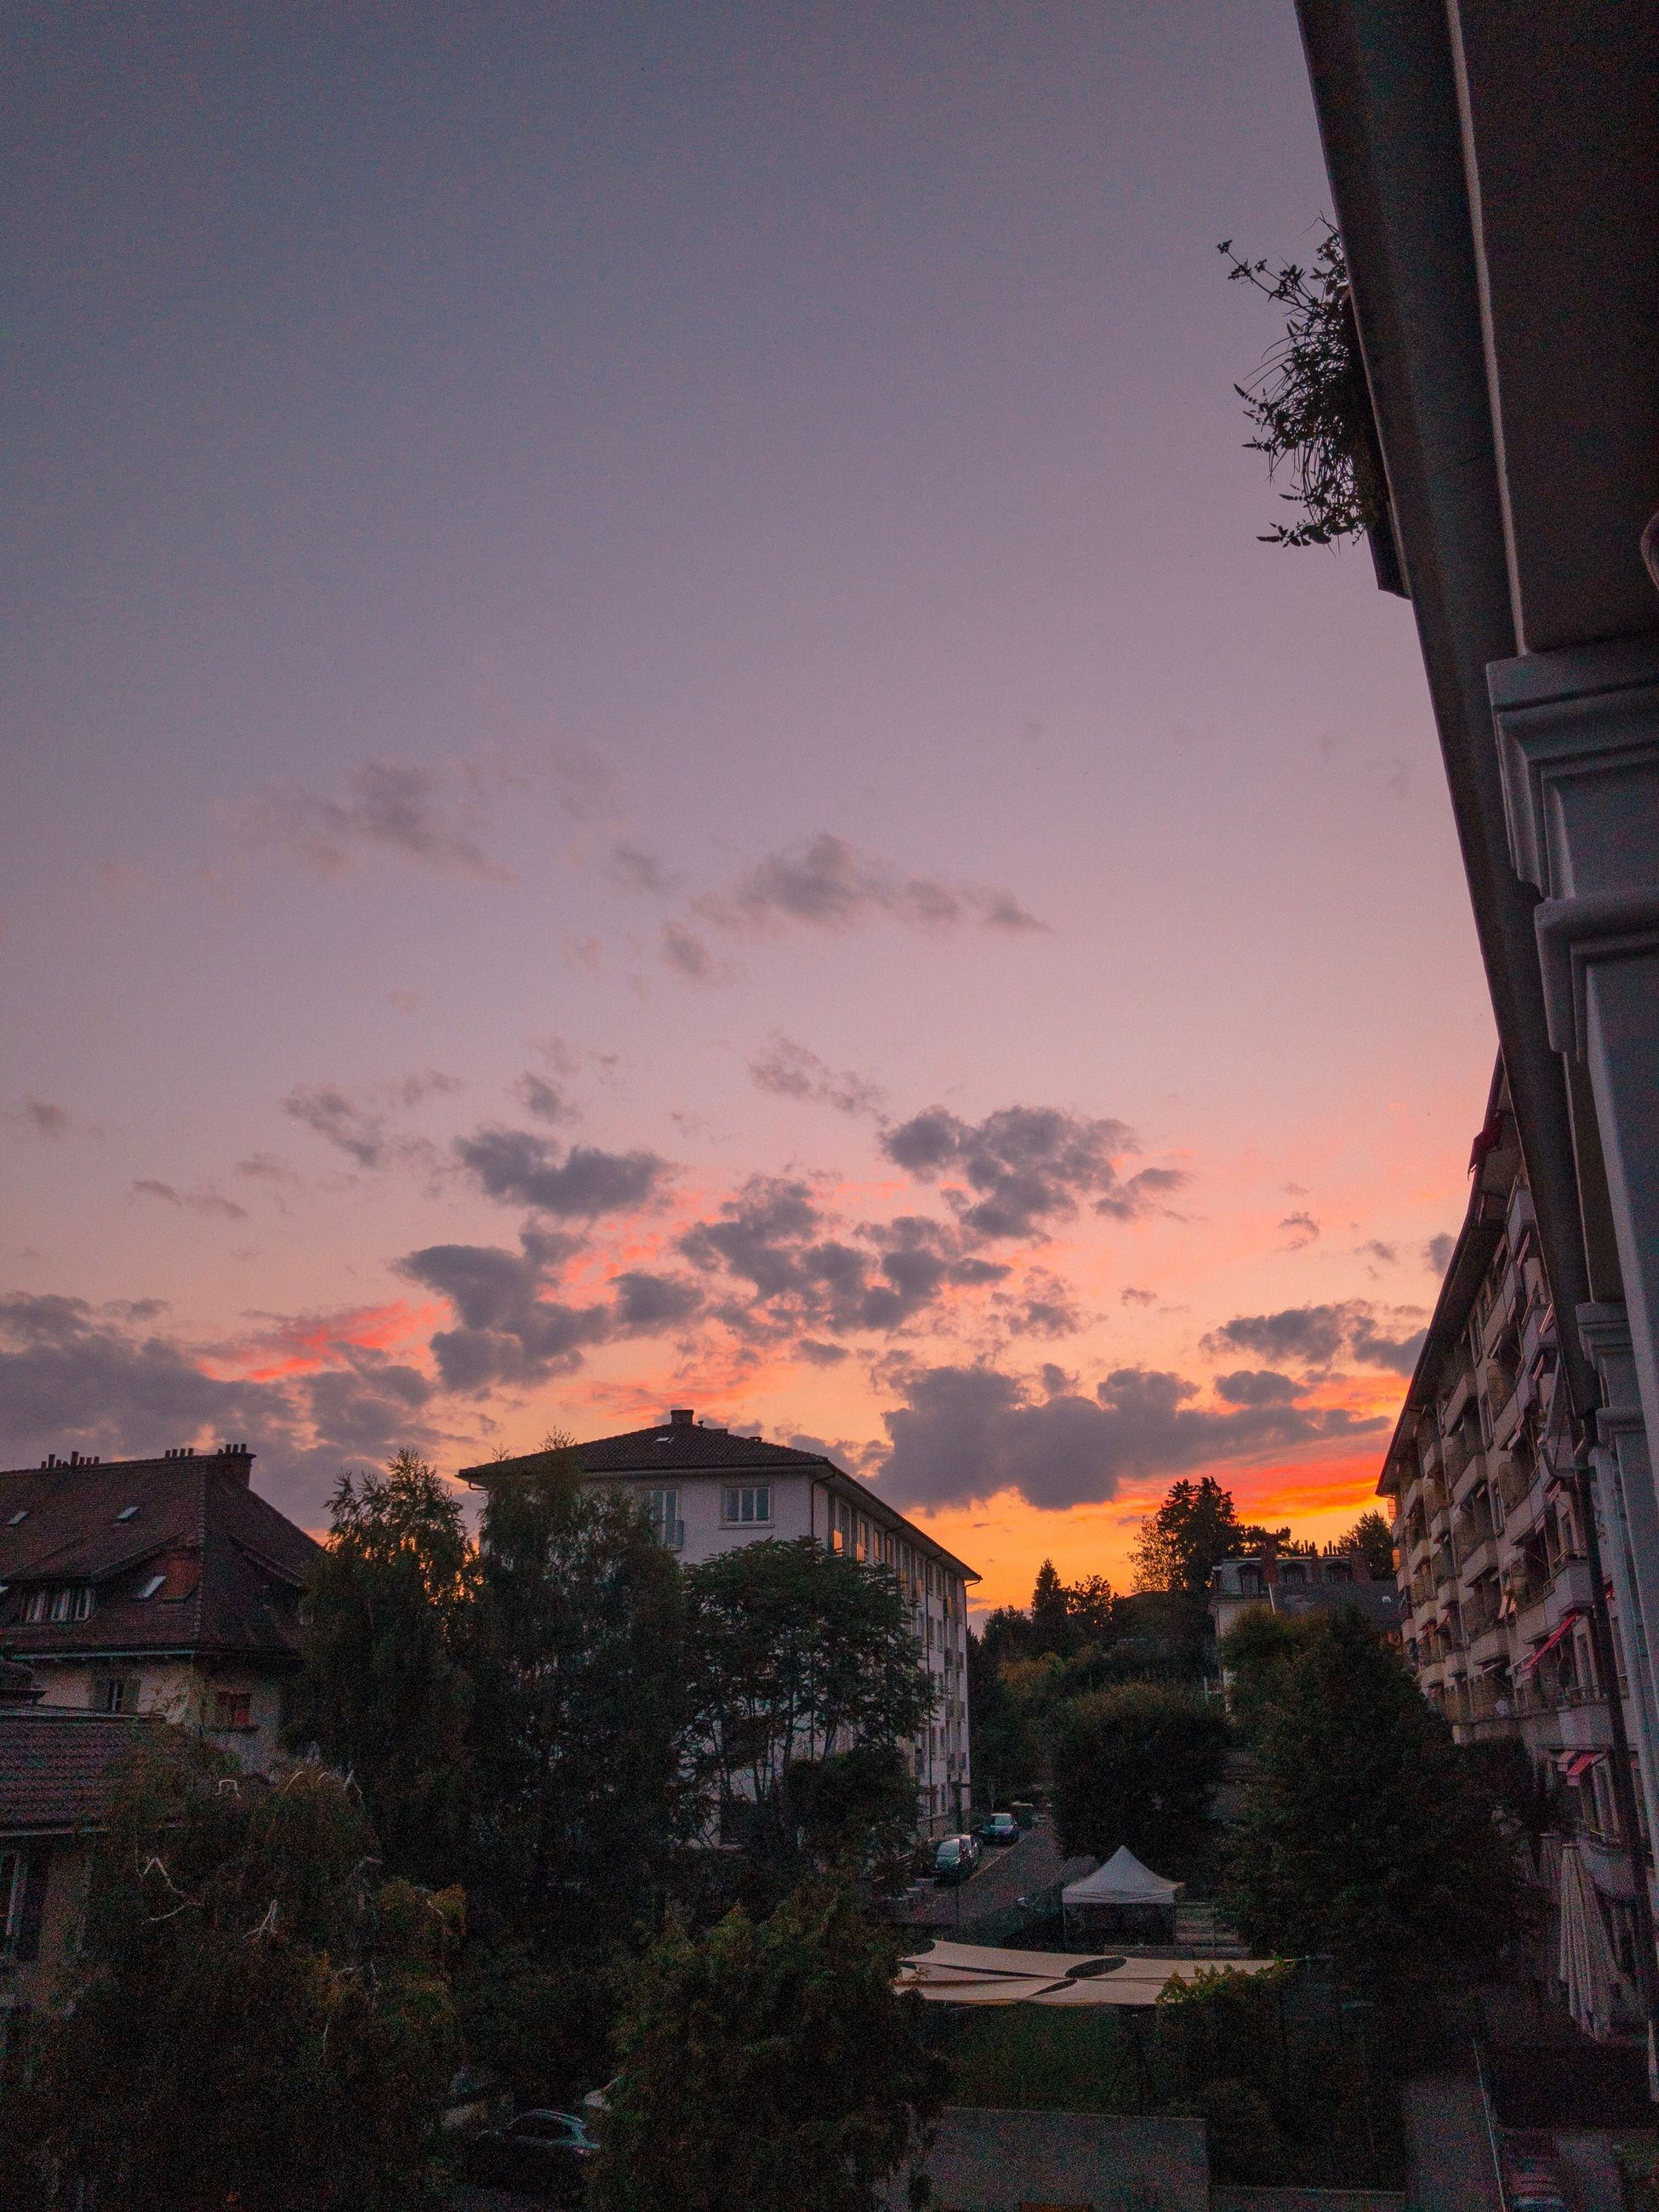 sky, sunset, architecture, built structure, building exterior, cloud - sky, city, nature, orange color, tree, no people, plant, building, outdoors, residential district, transportation, house, beauty in nature, copy space, street, place